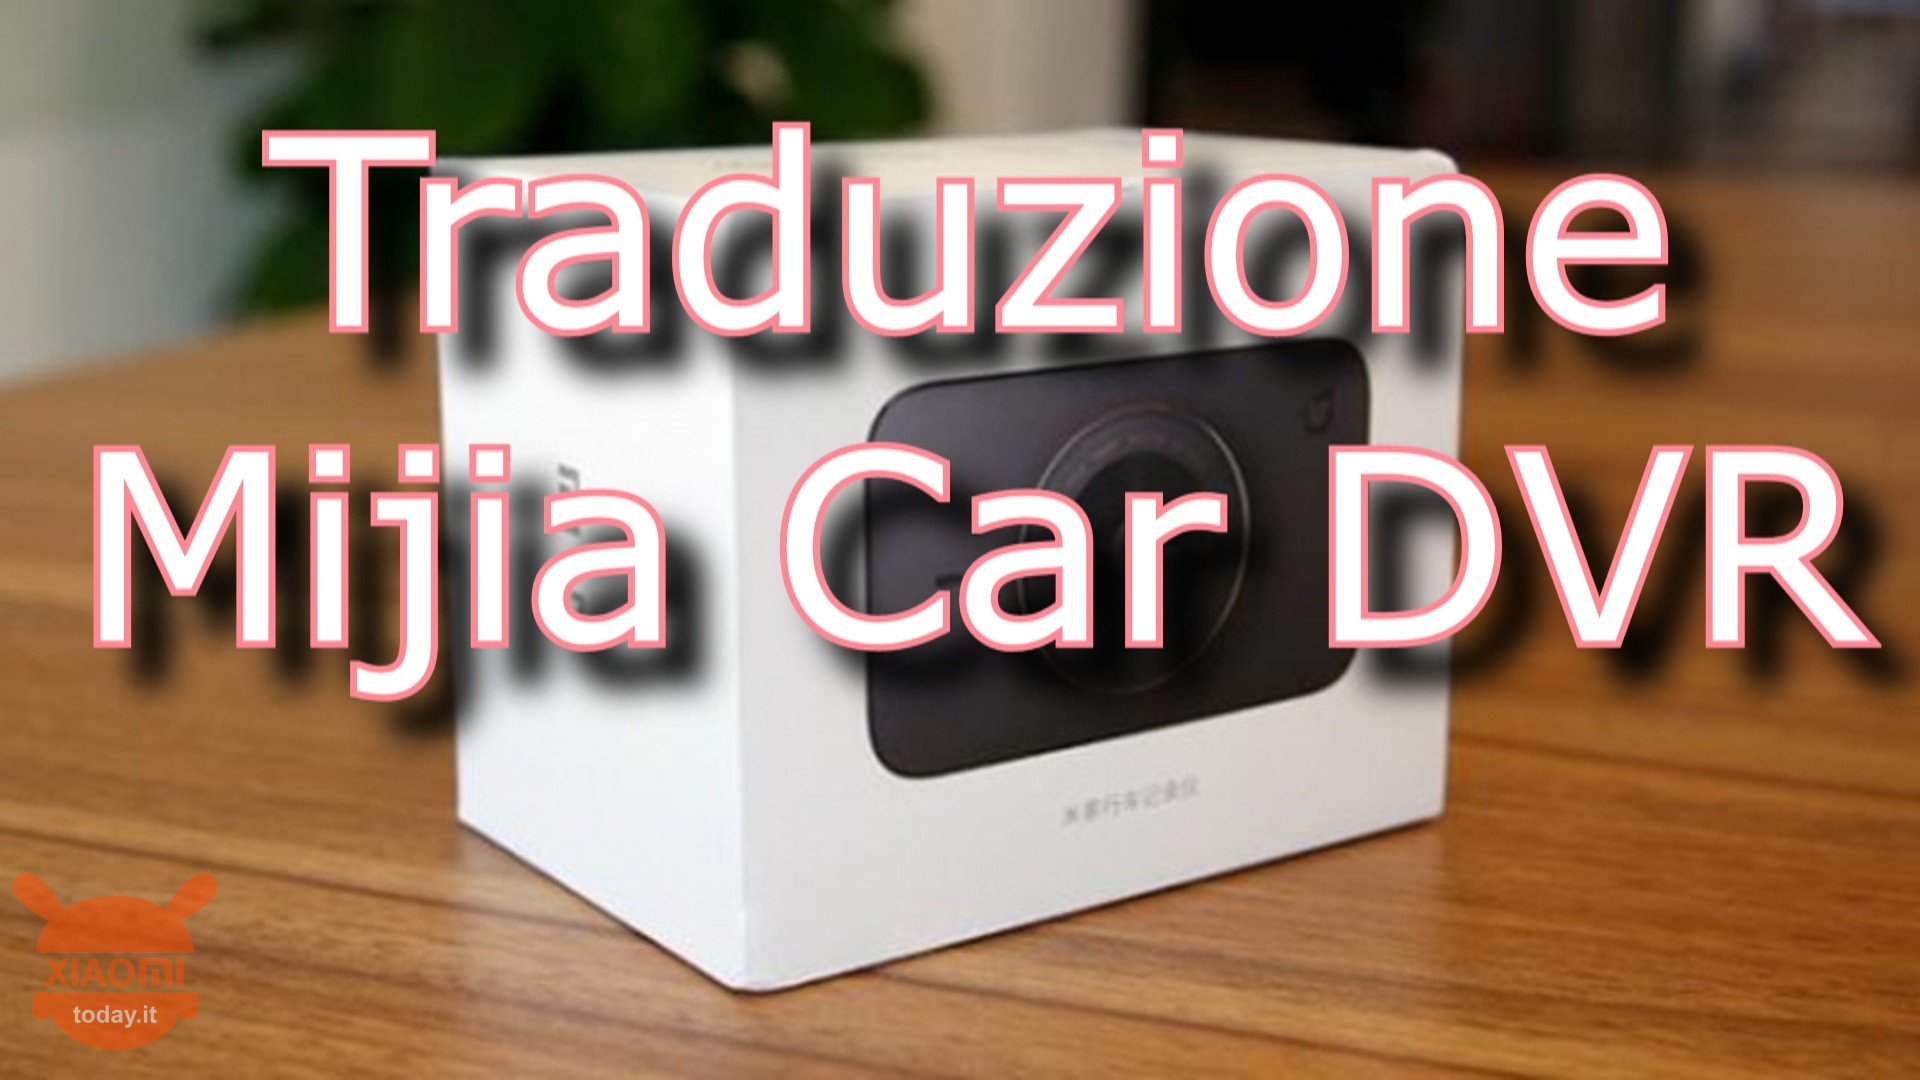 Mijia dvr do carro